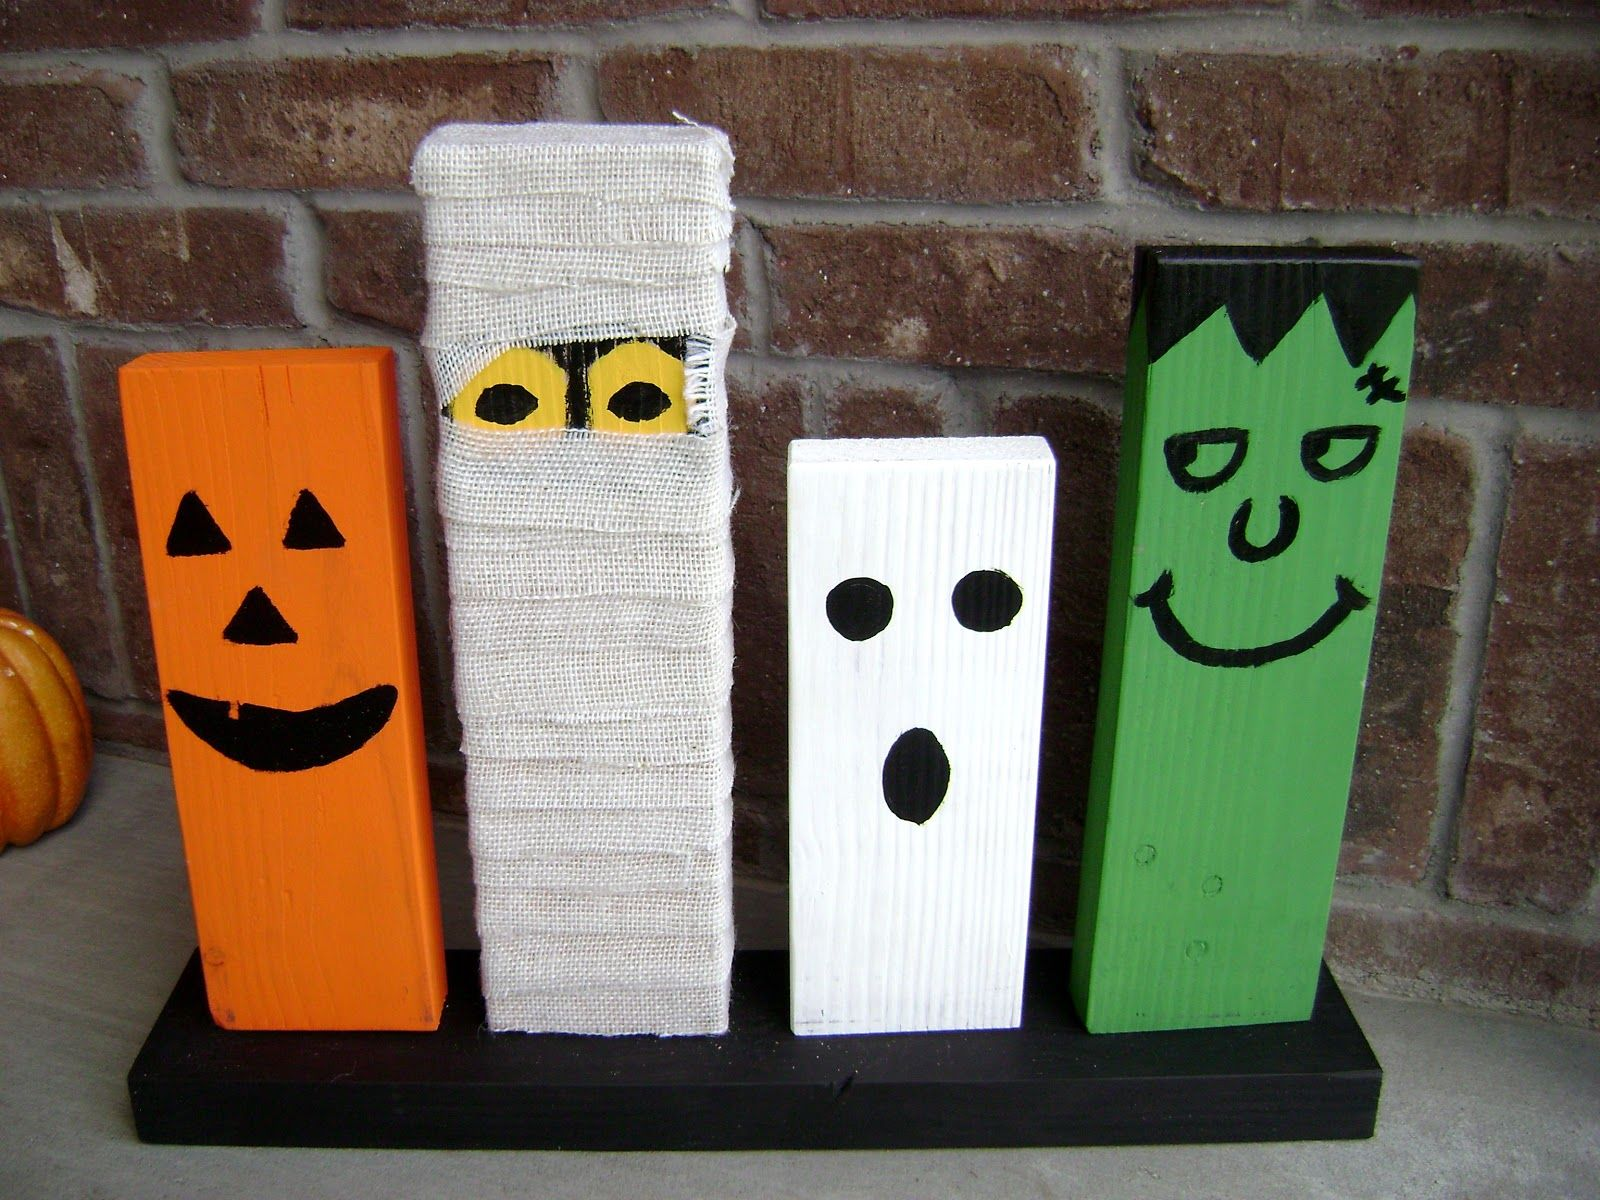 Halloween diy decor - Free Images About Cute Halloween Ideas On Pinterest With Halloween Home Made Decorations